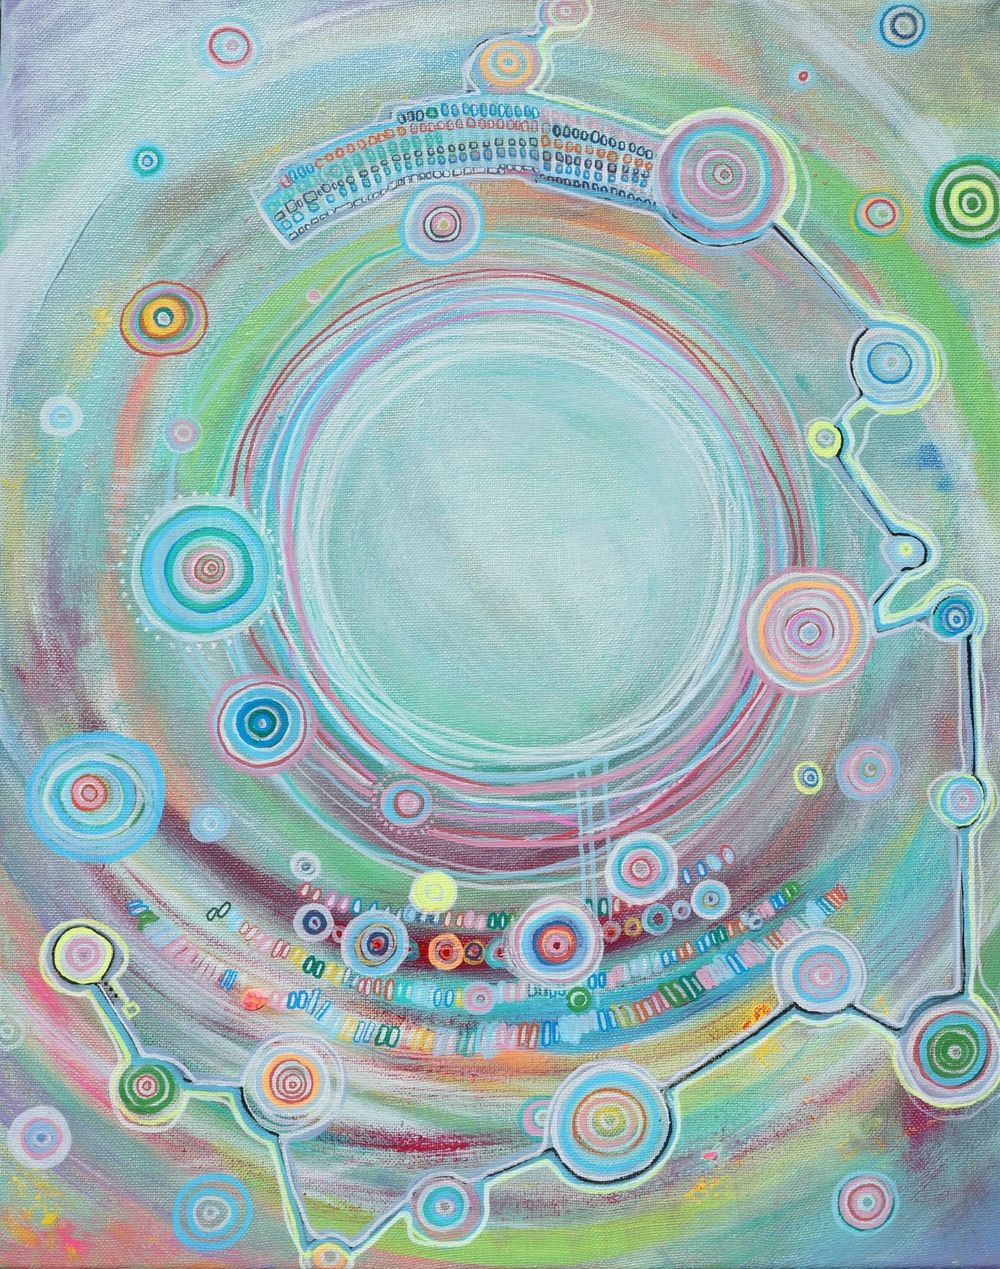 """Sharon Ryder """"AM & FM - emotions are frequencies, we are like radios."""" acrylic on canvas,  2014 - Sharon Ryder is a 20 year old self-taught painter based in Joshua Tree, CA. She was born in Viña del Mar, Chile and experienced many hardships that led her to express herself through art. Her works are a type of self-psychoanalysis, where she discovers truths about herself as well as aspects of the human psyche in general and divine consciousness / http://www.sharonryder.com"""